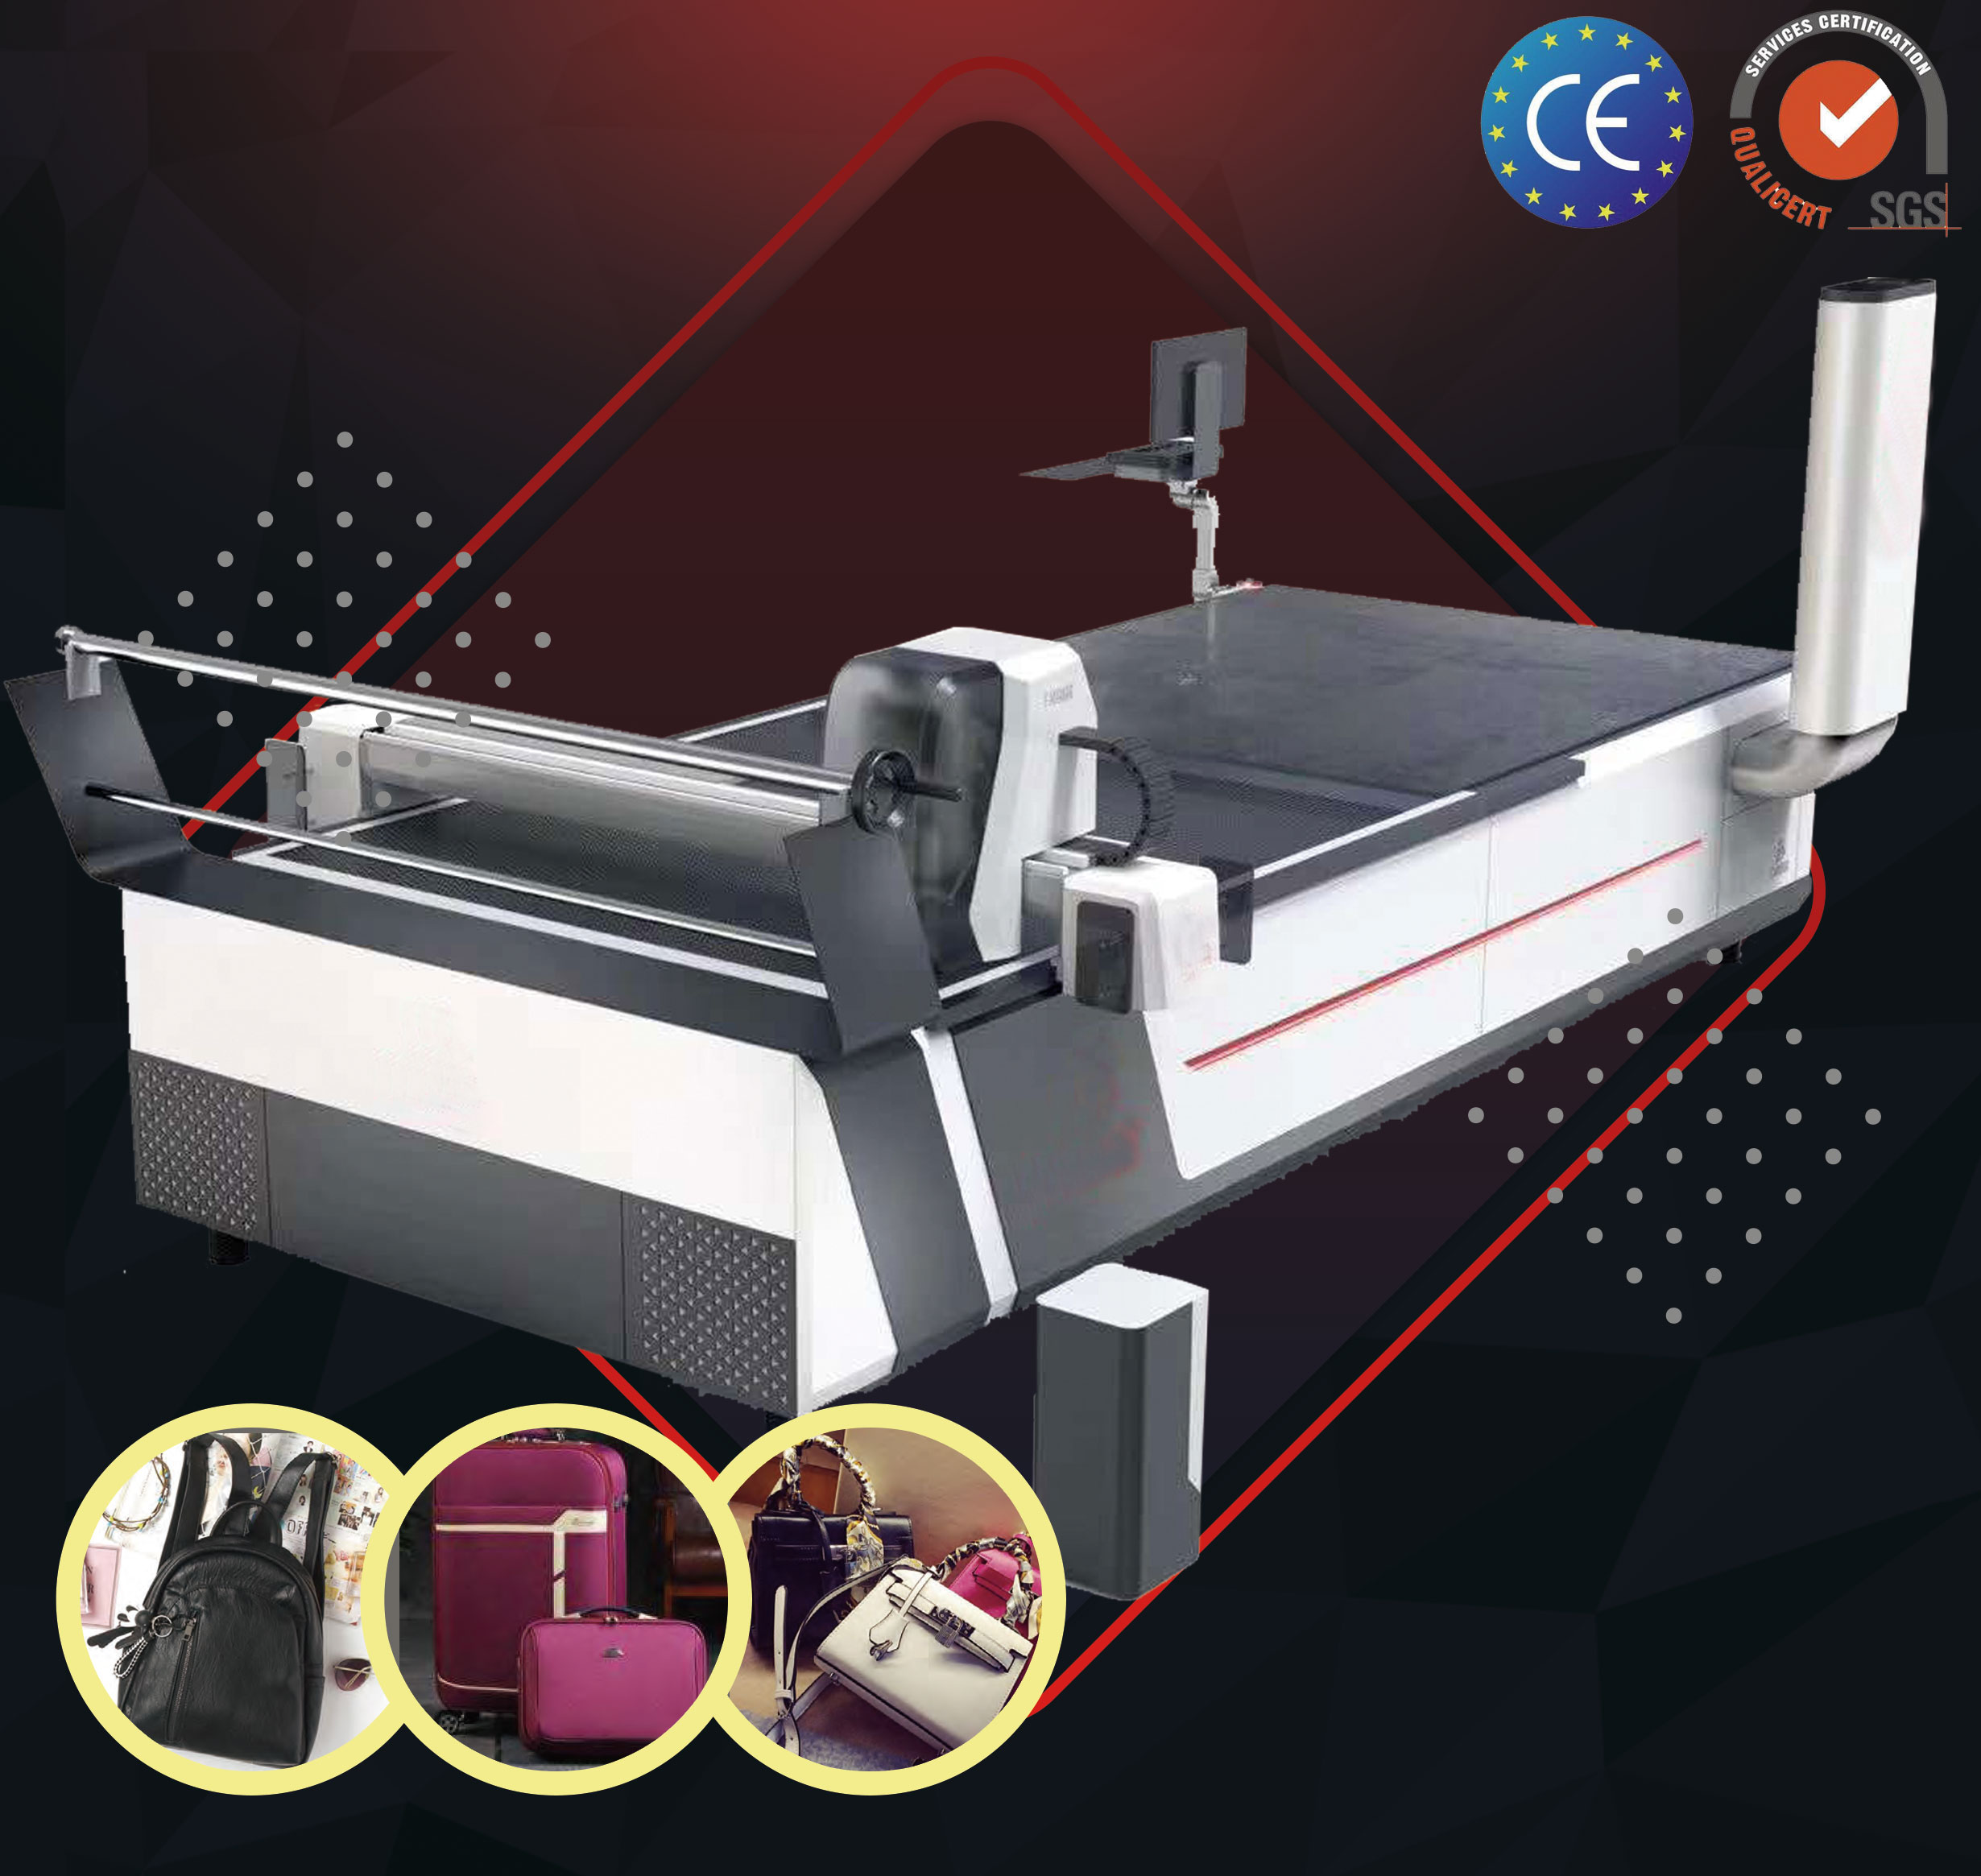 Full Auto Cutter for Luggage